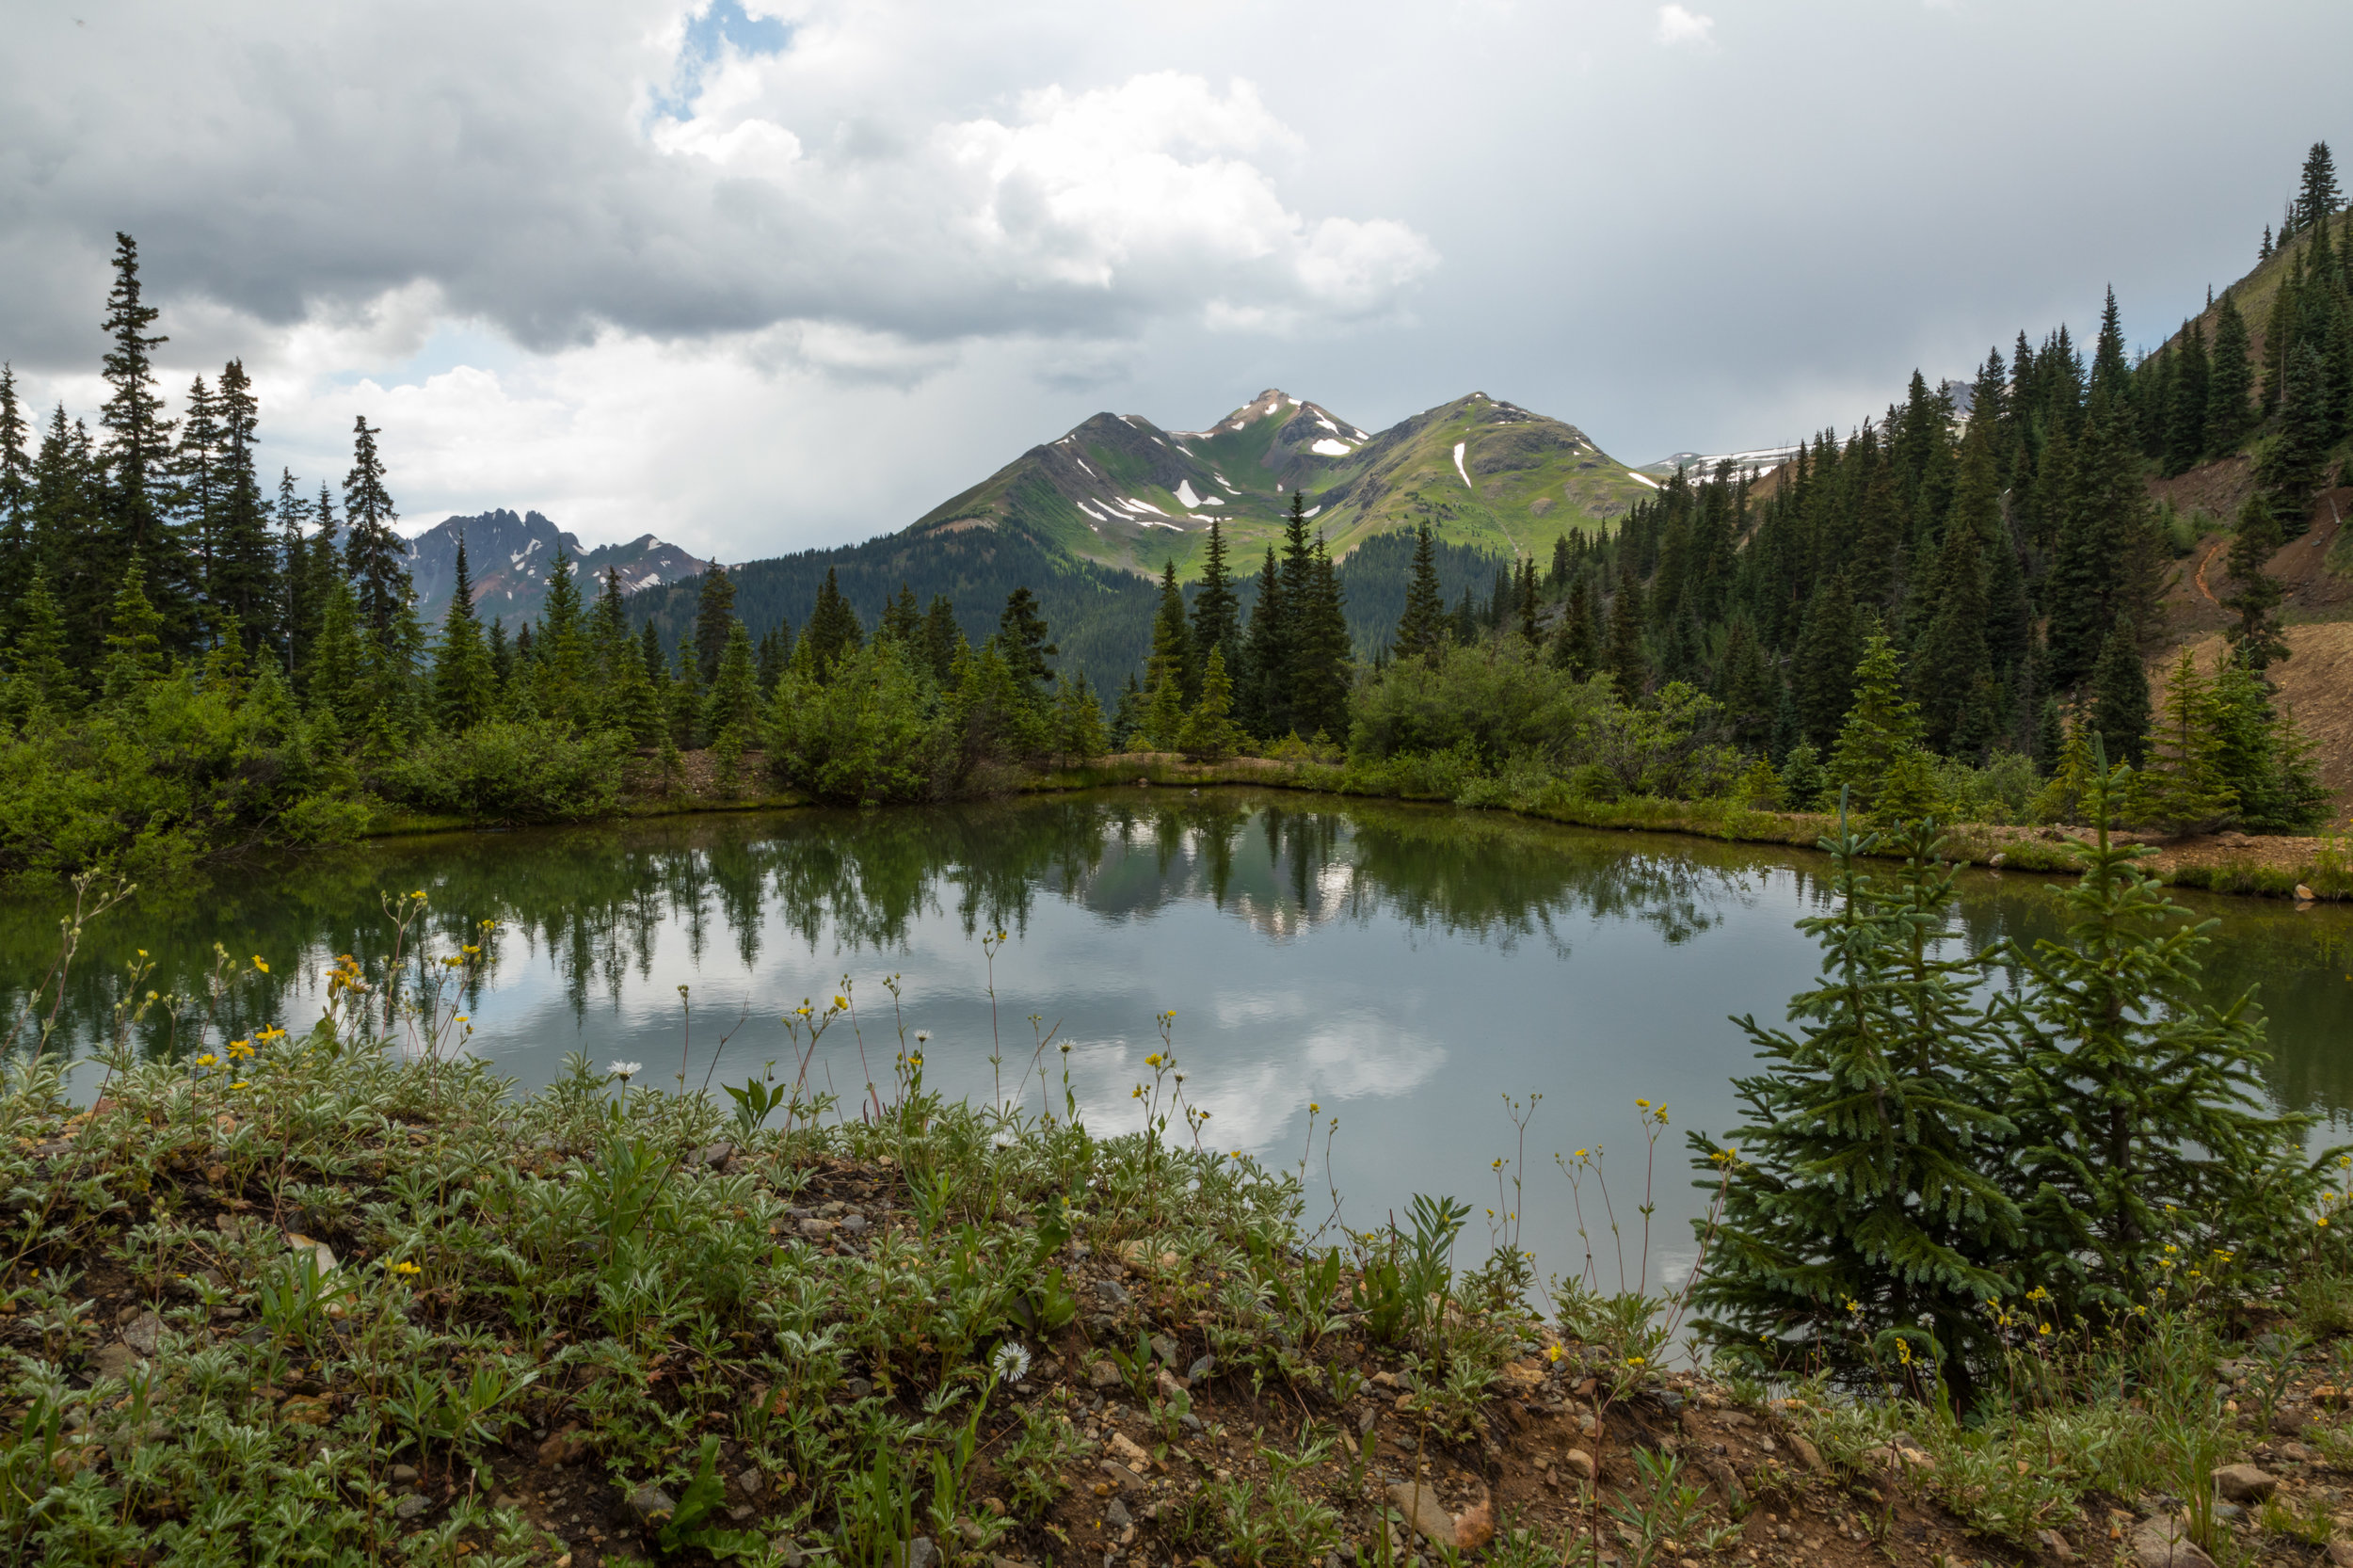 Browns Gulch Road, Image # 0725